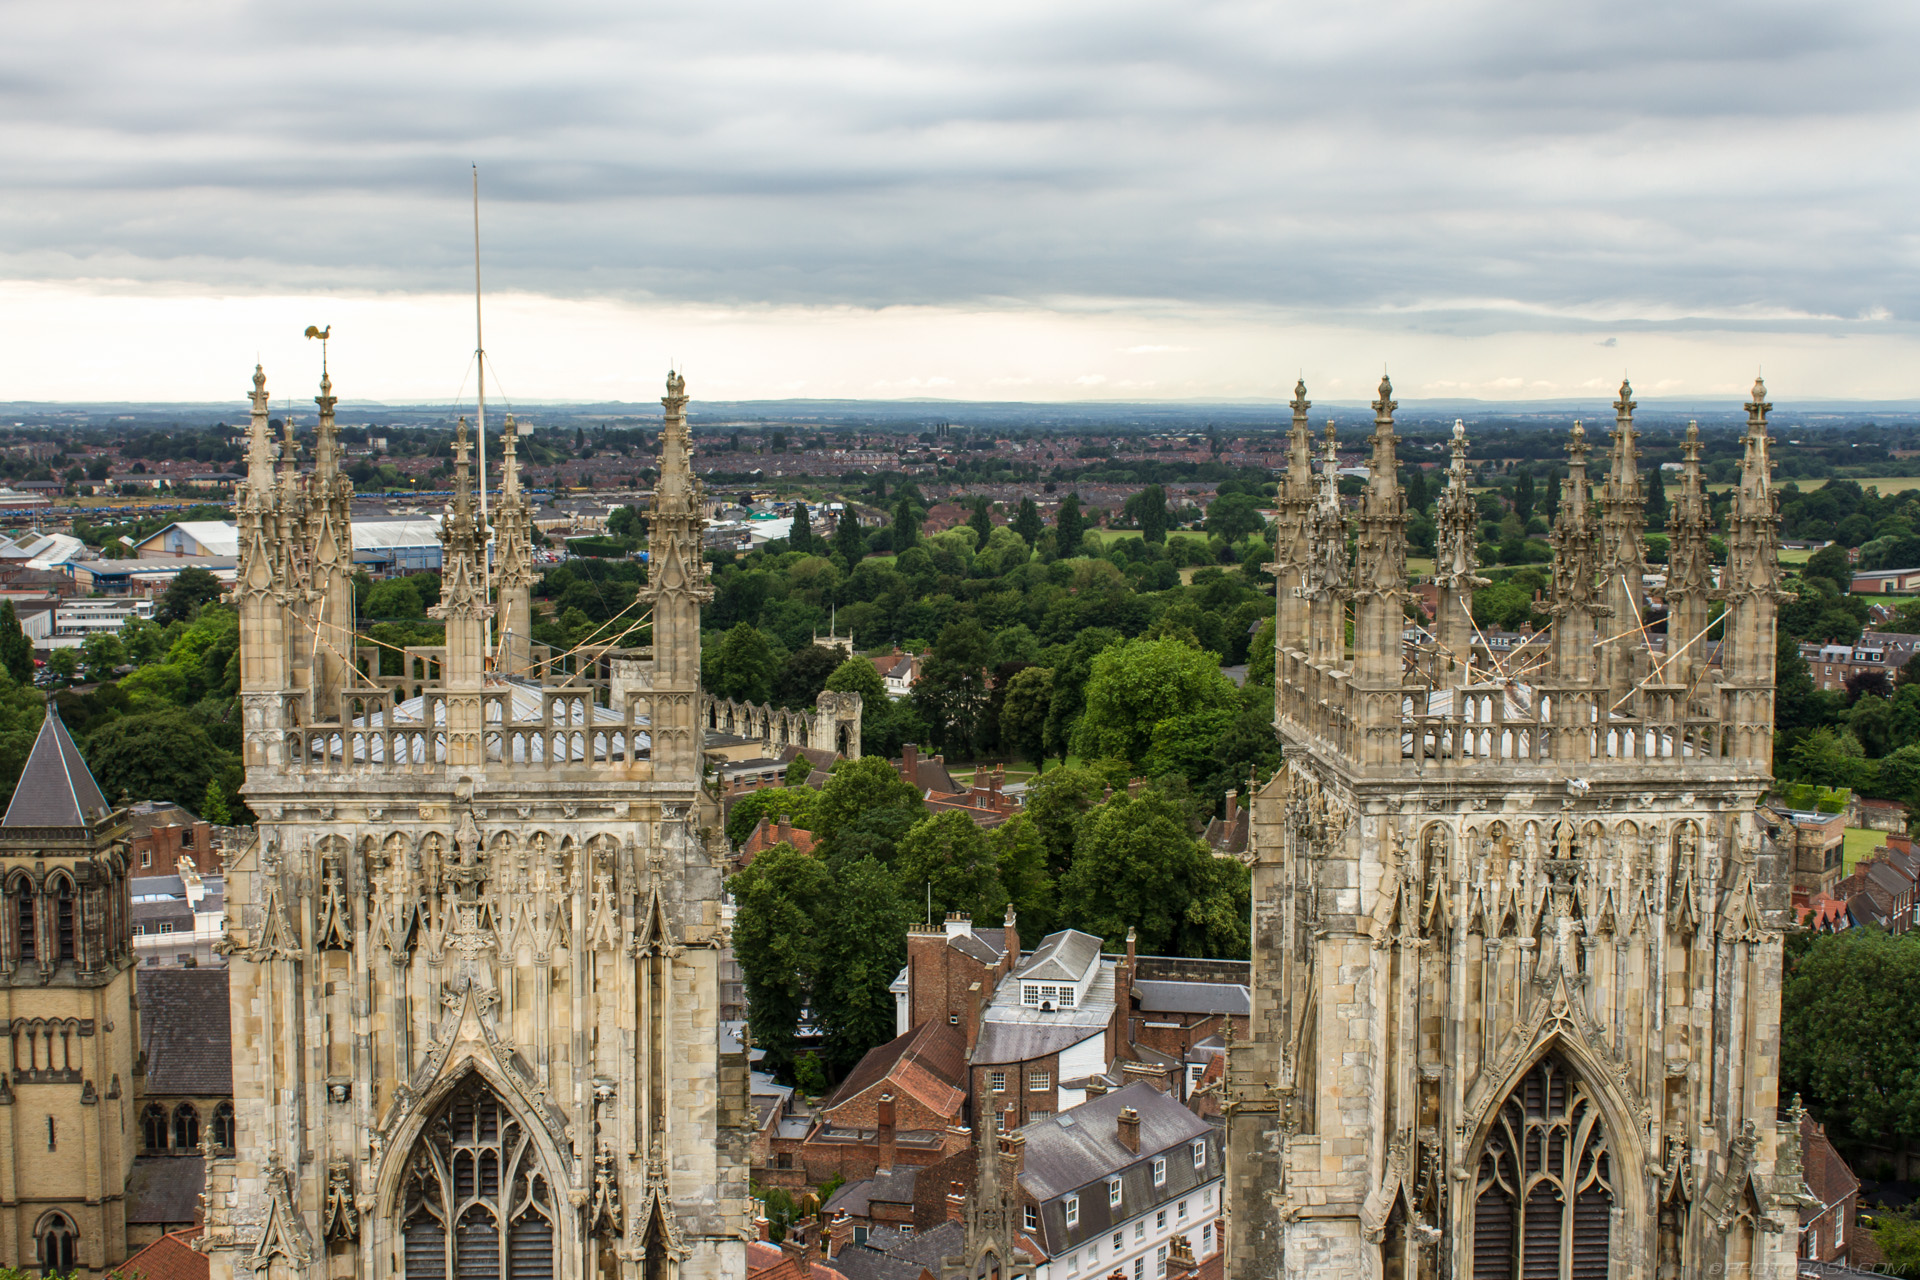 https://photorasa.com/yorkminster-cathedral/two-towers/